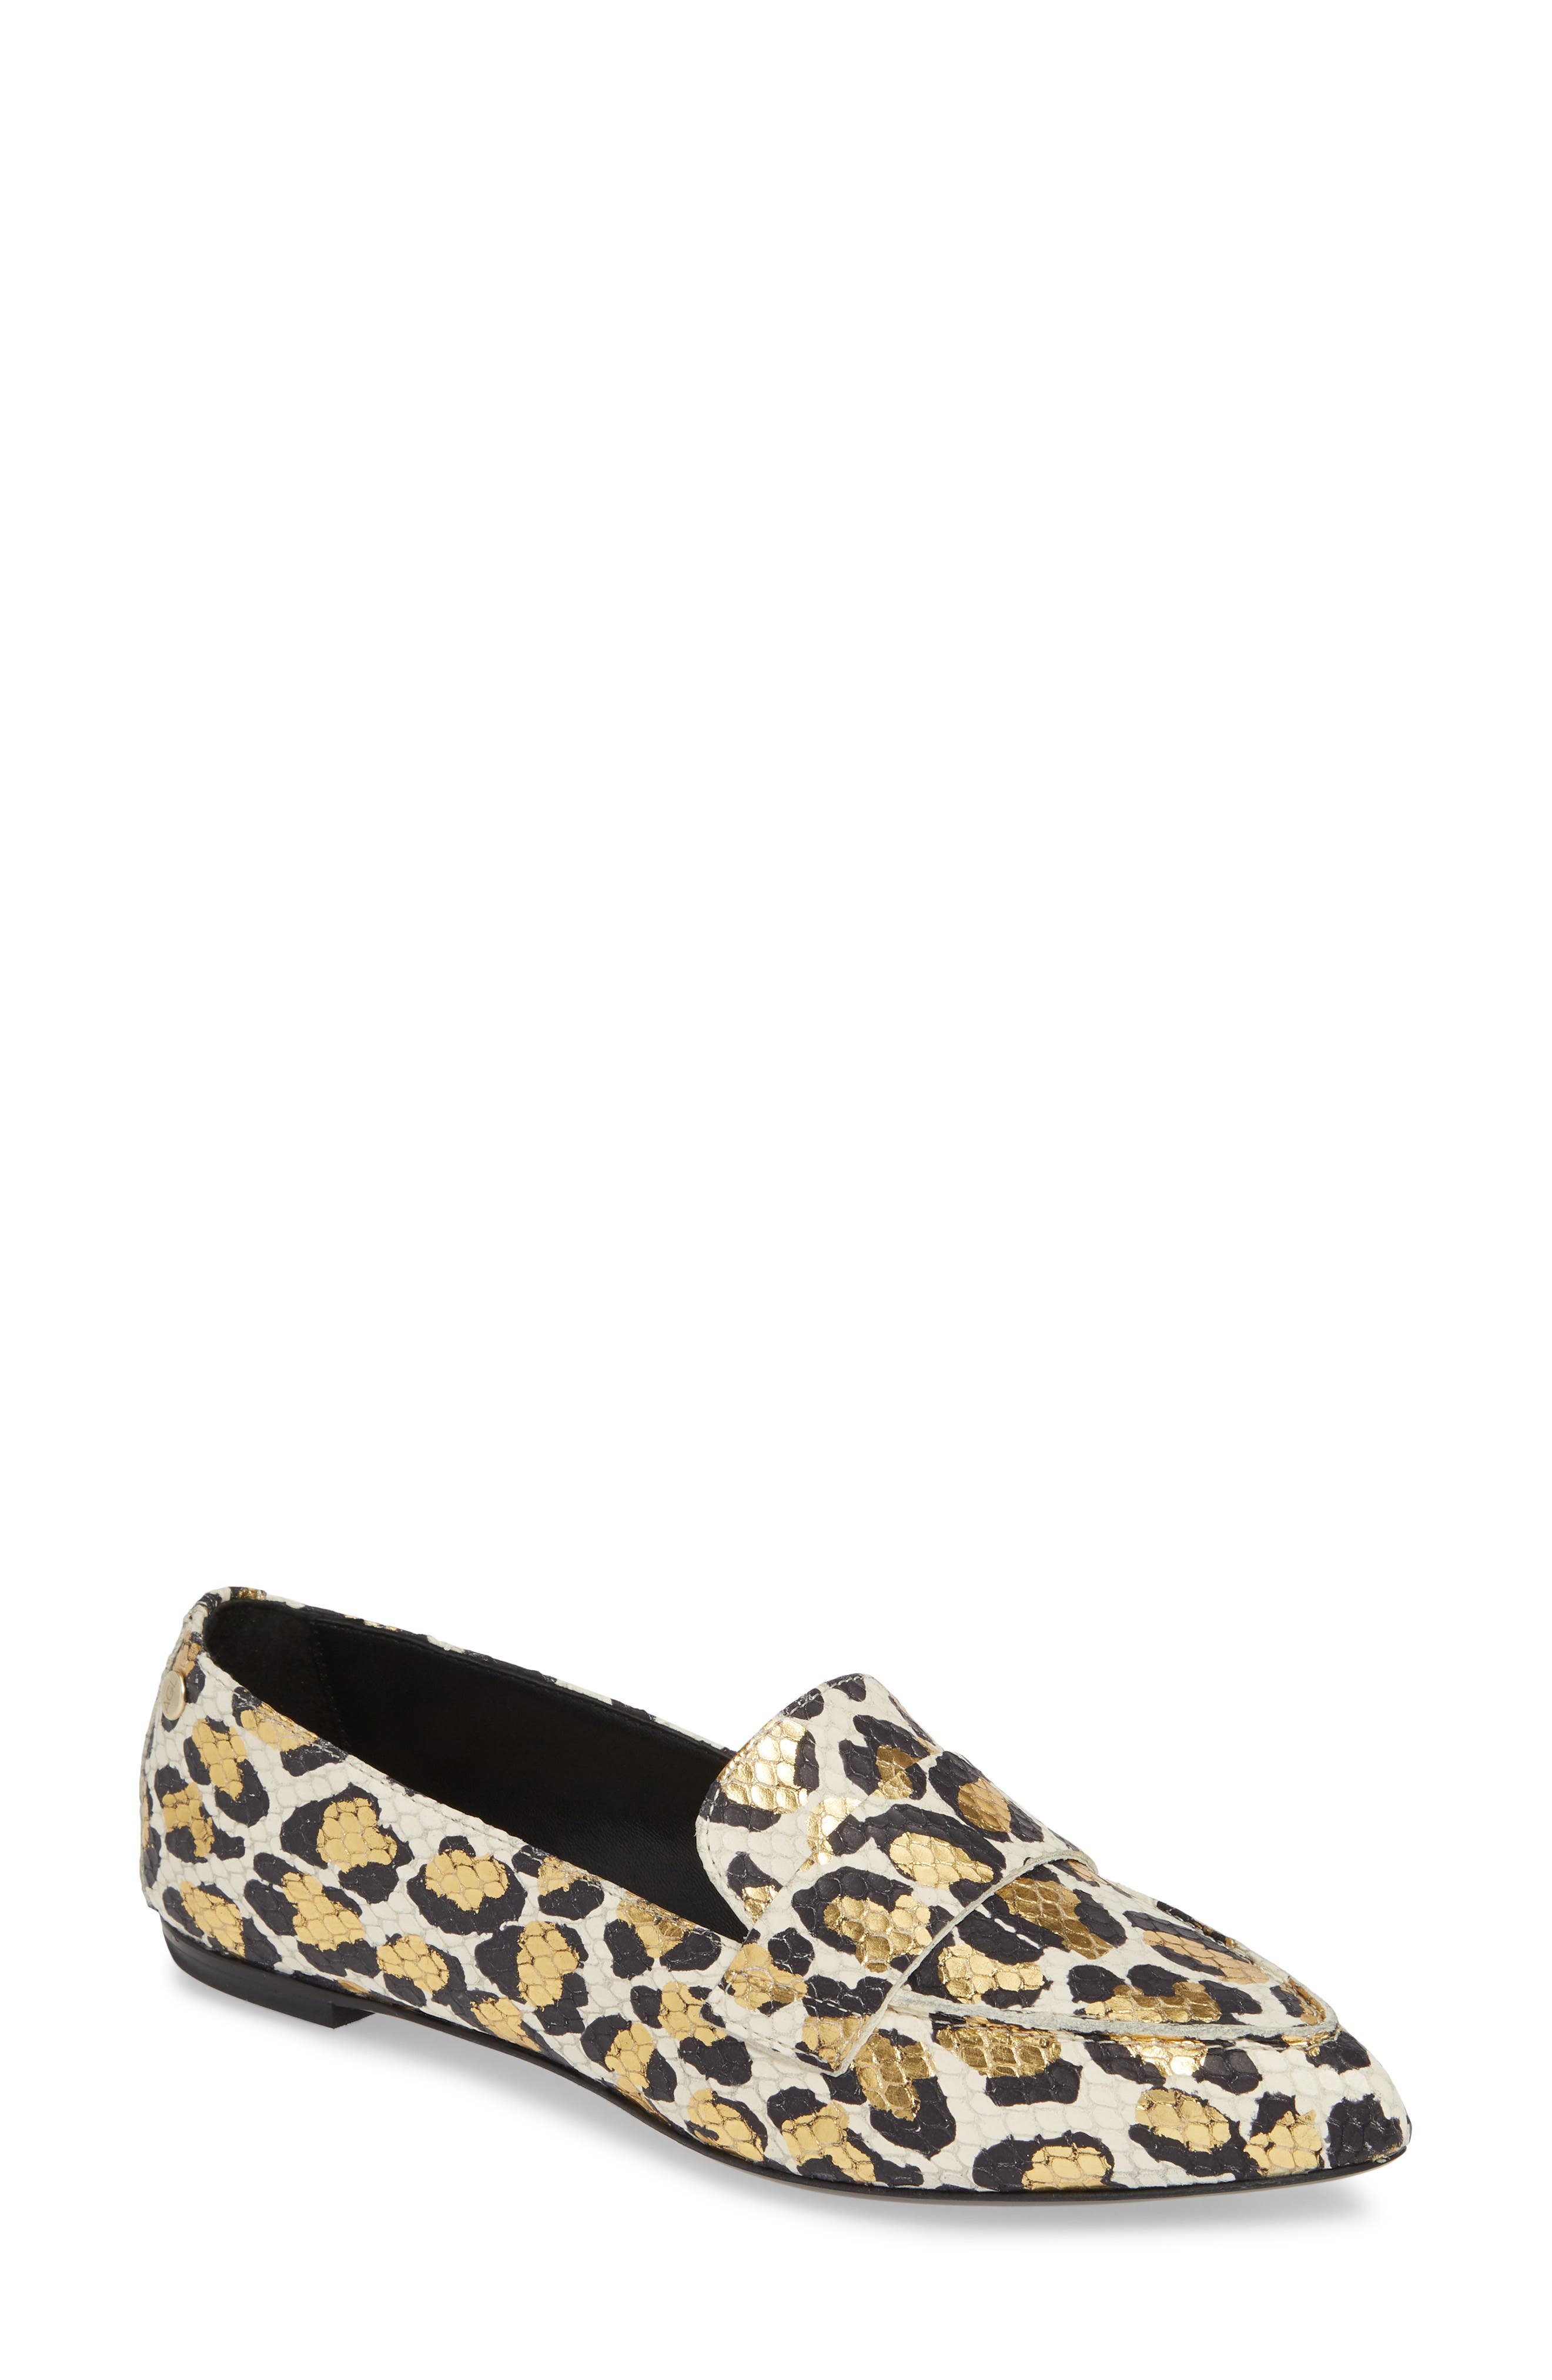 Softy Pointy Toe Moccasin Loafer, Main, color, 101